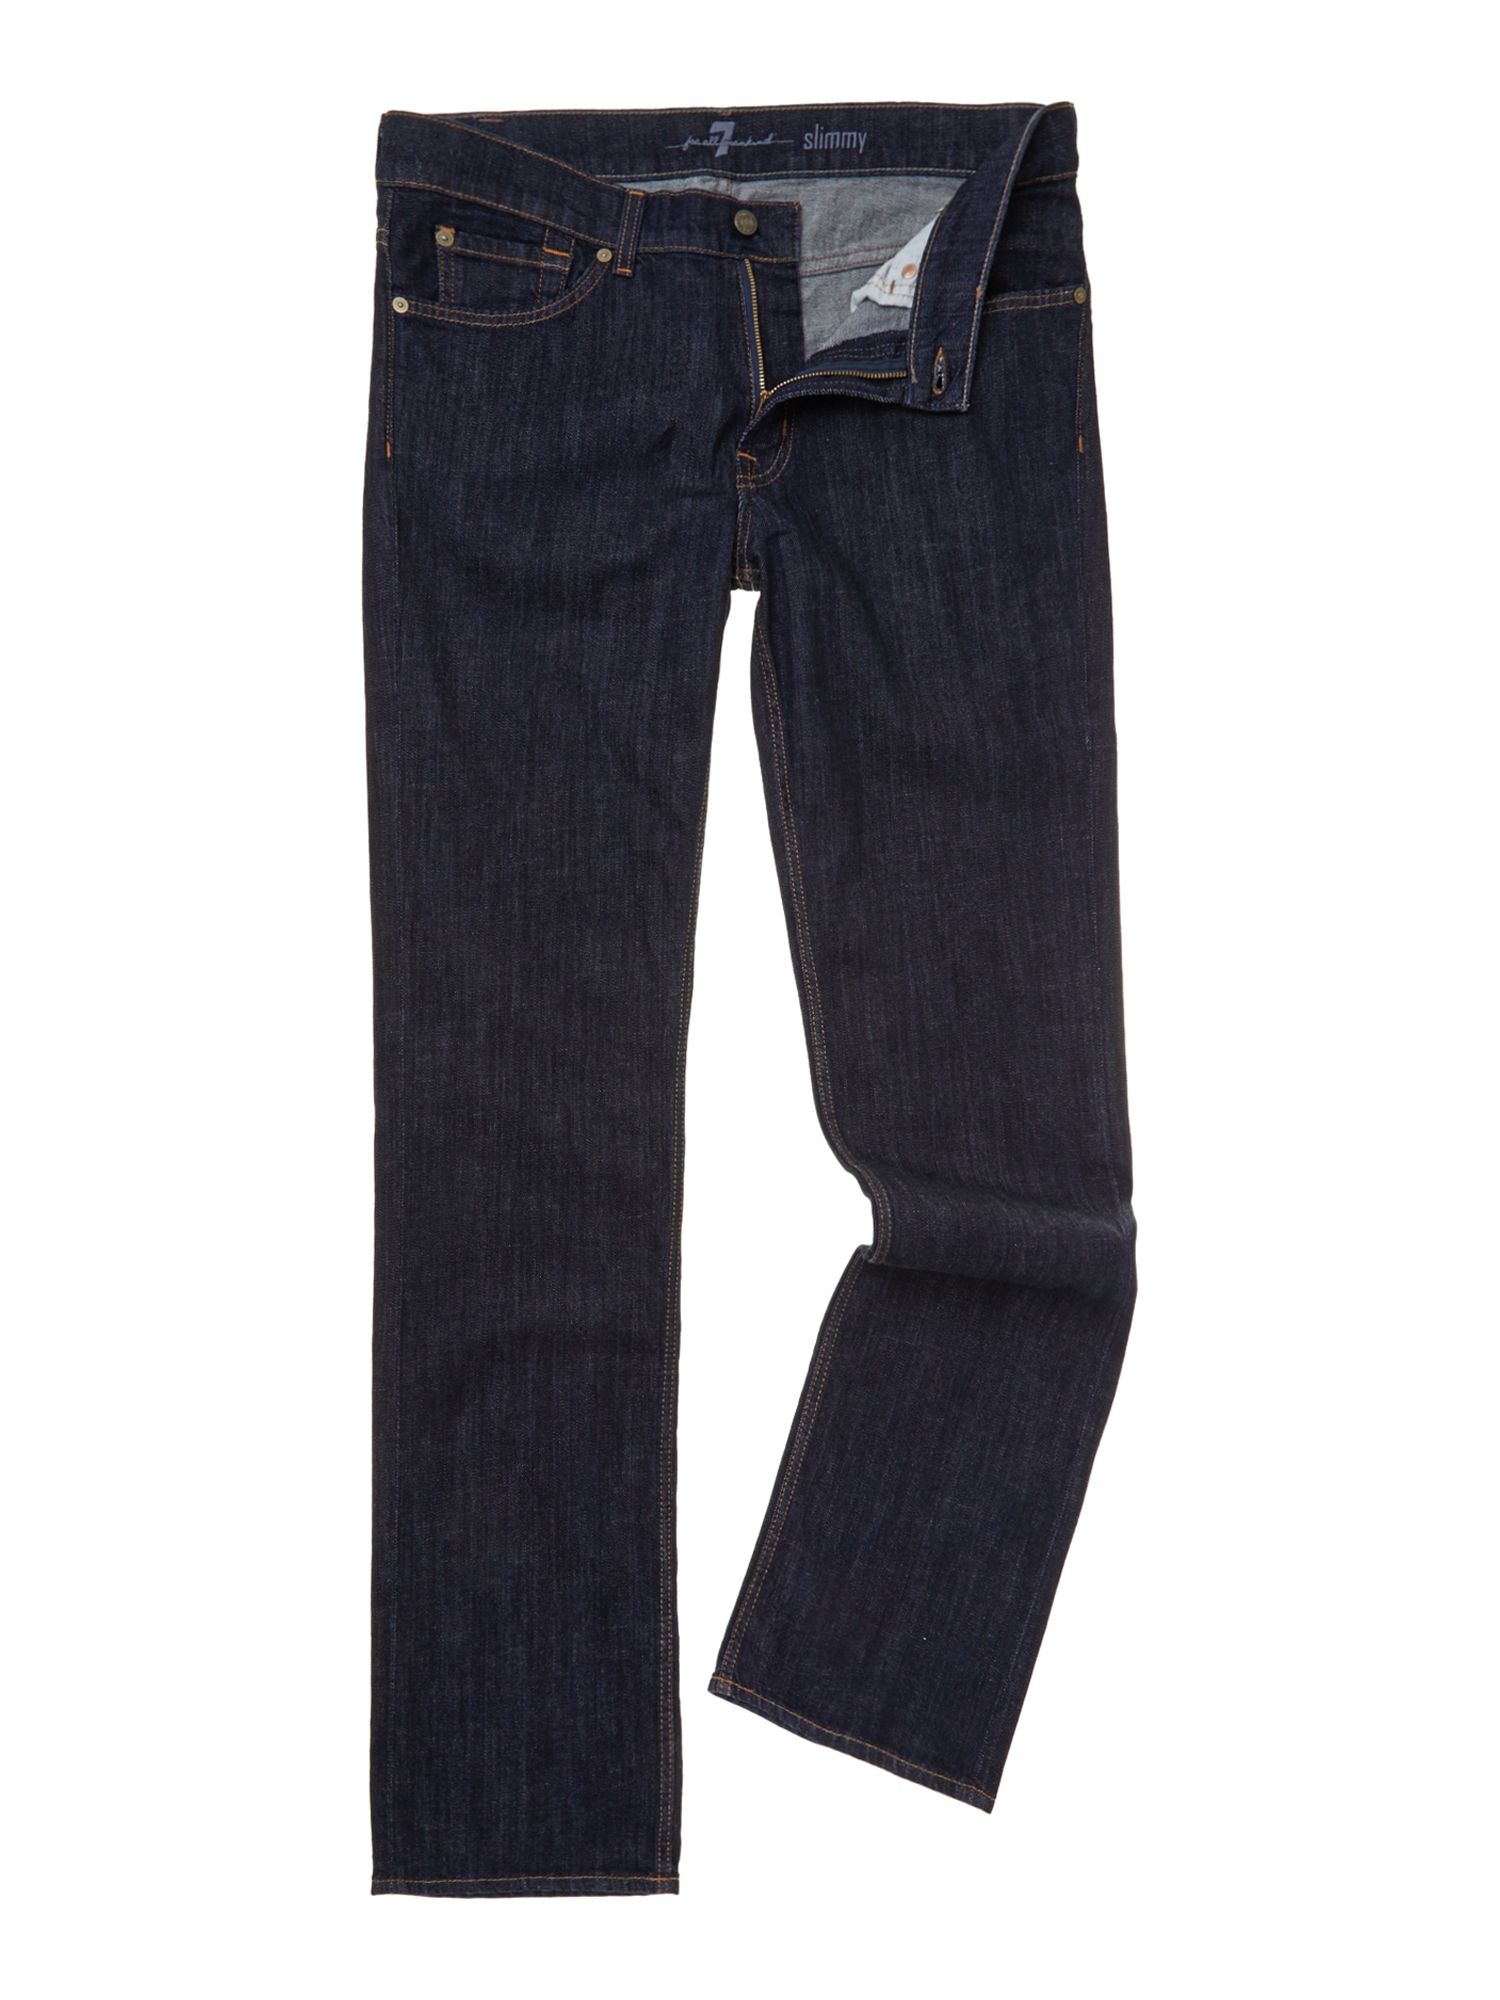 Slimmy hollywood dark wash jean